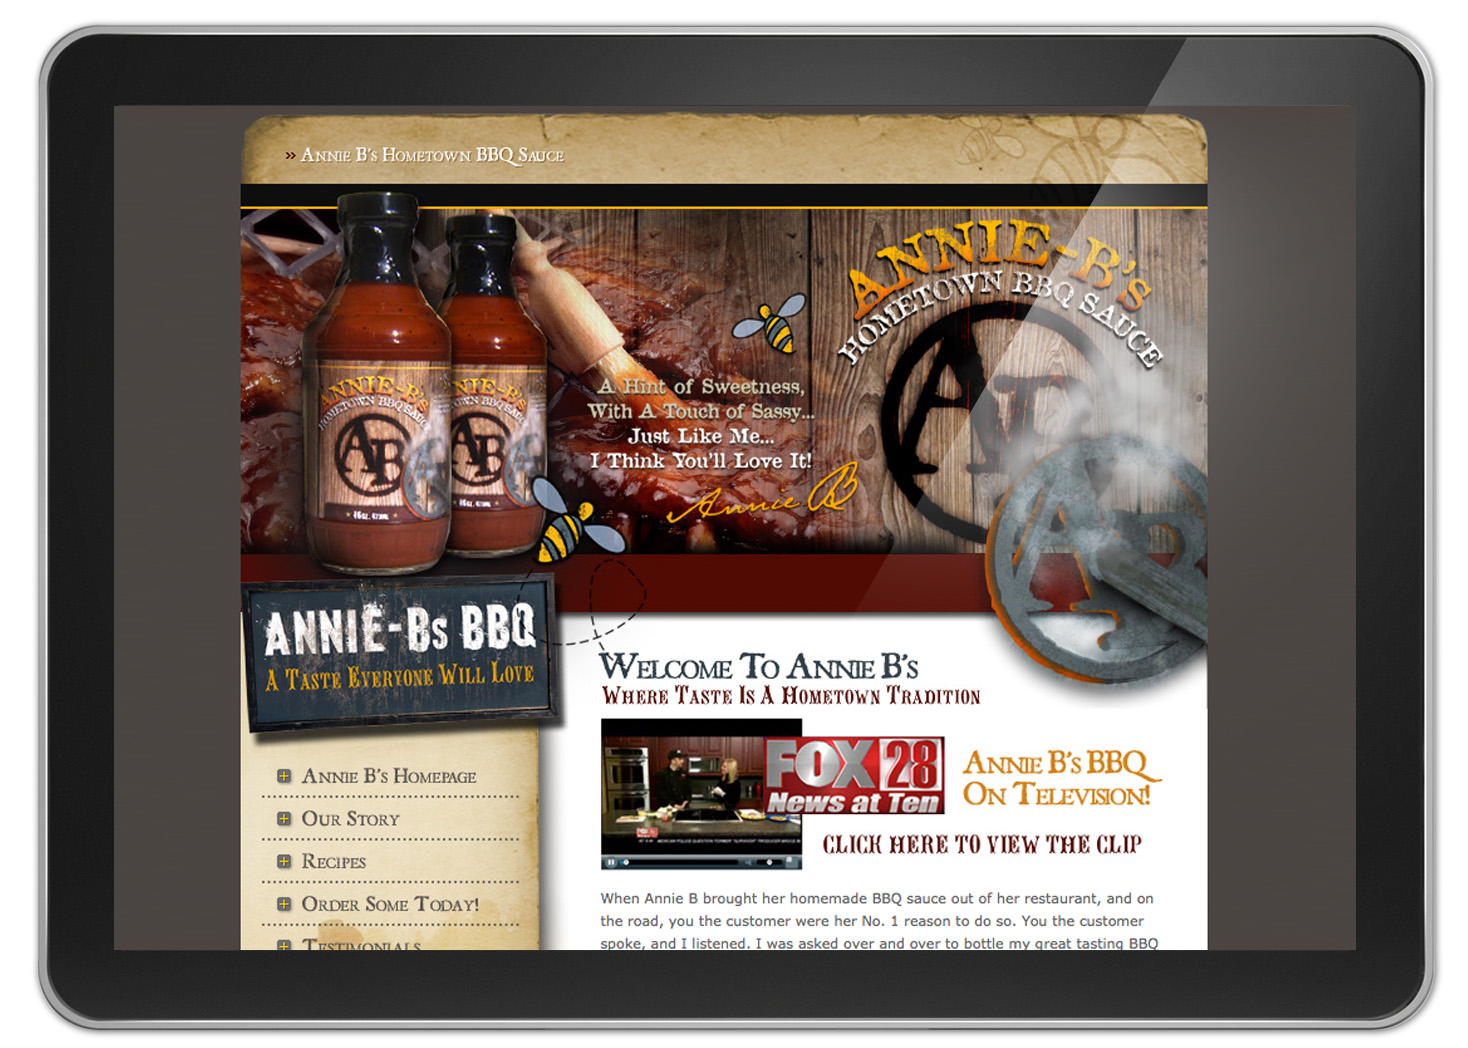 Annie Bs BBQ Sauce Website Design and Development - Lehman Design